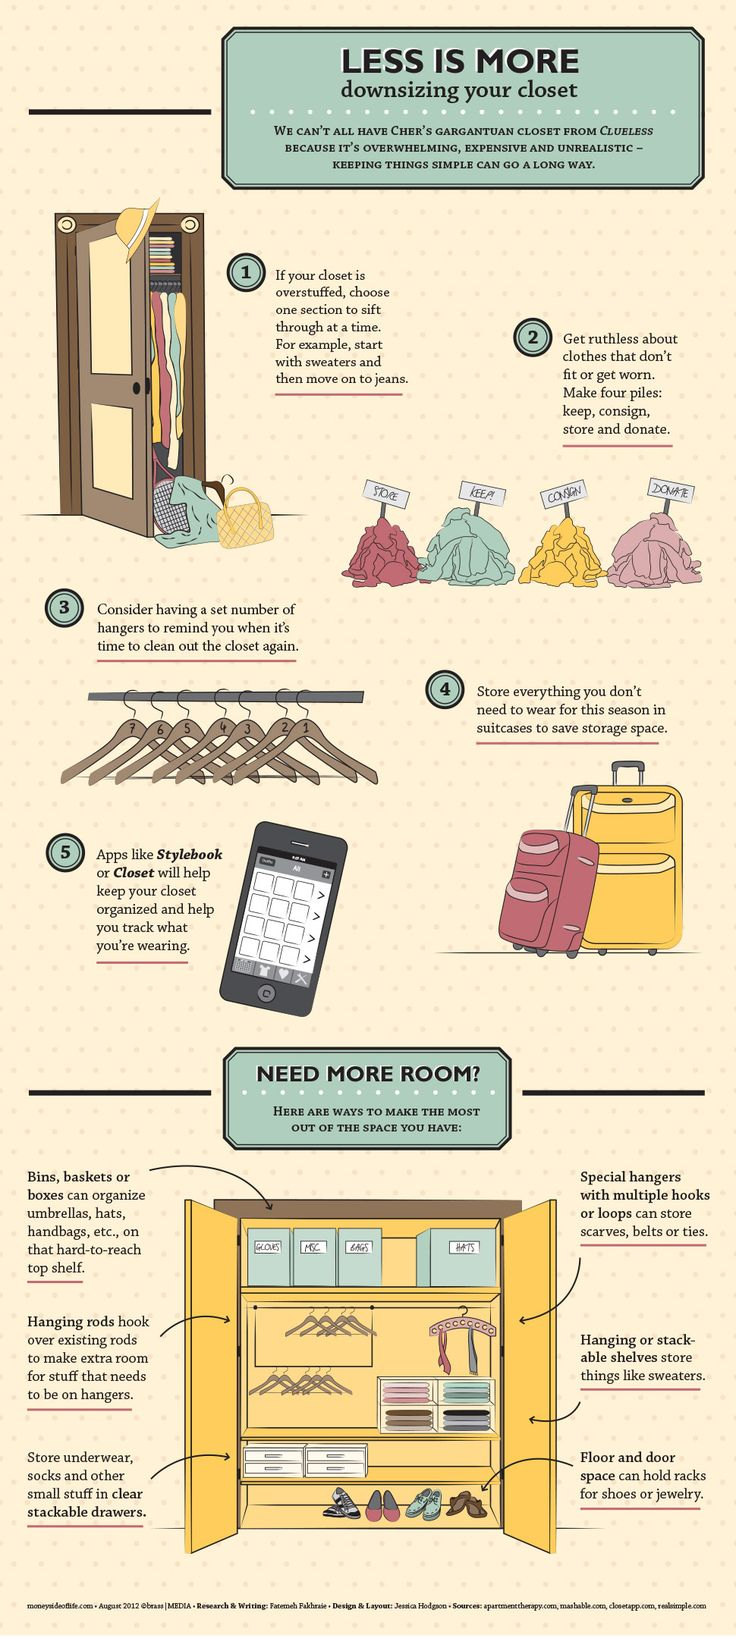 Less is More, start de-cluttering your apartment! Now that's the the Red Oak Life! www.redoakproperties.com